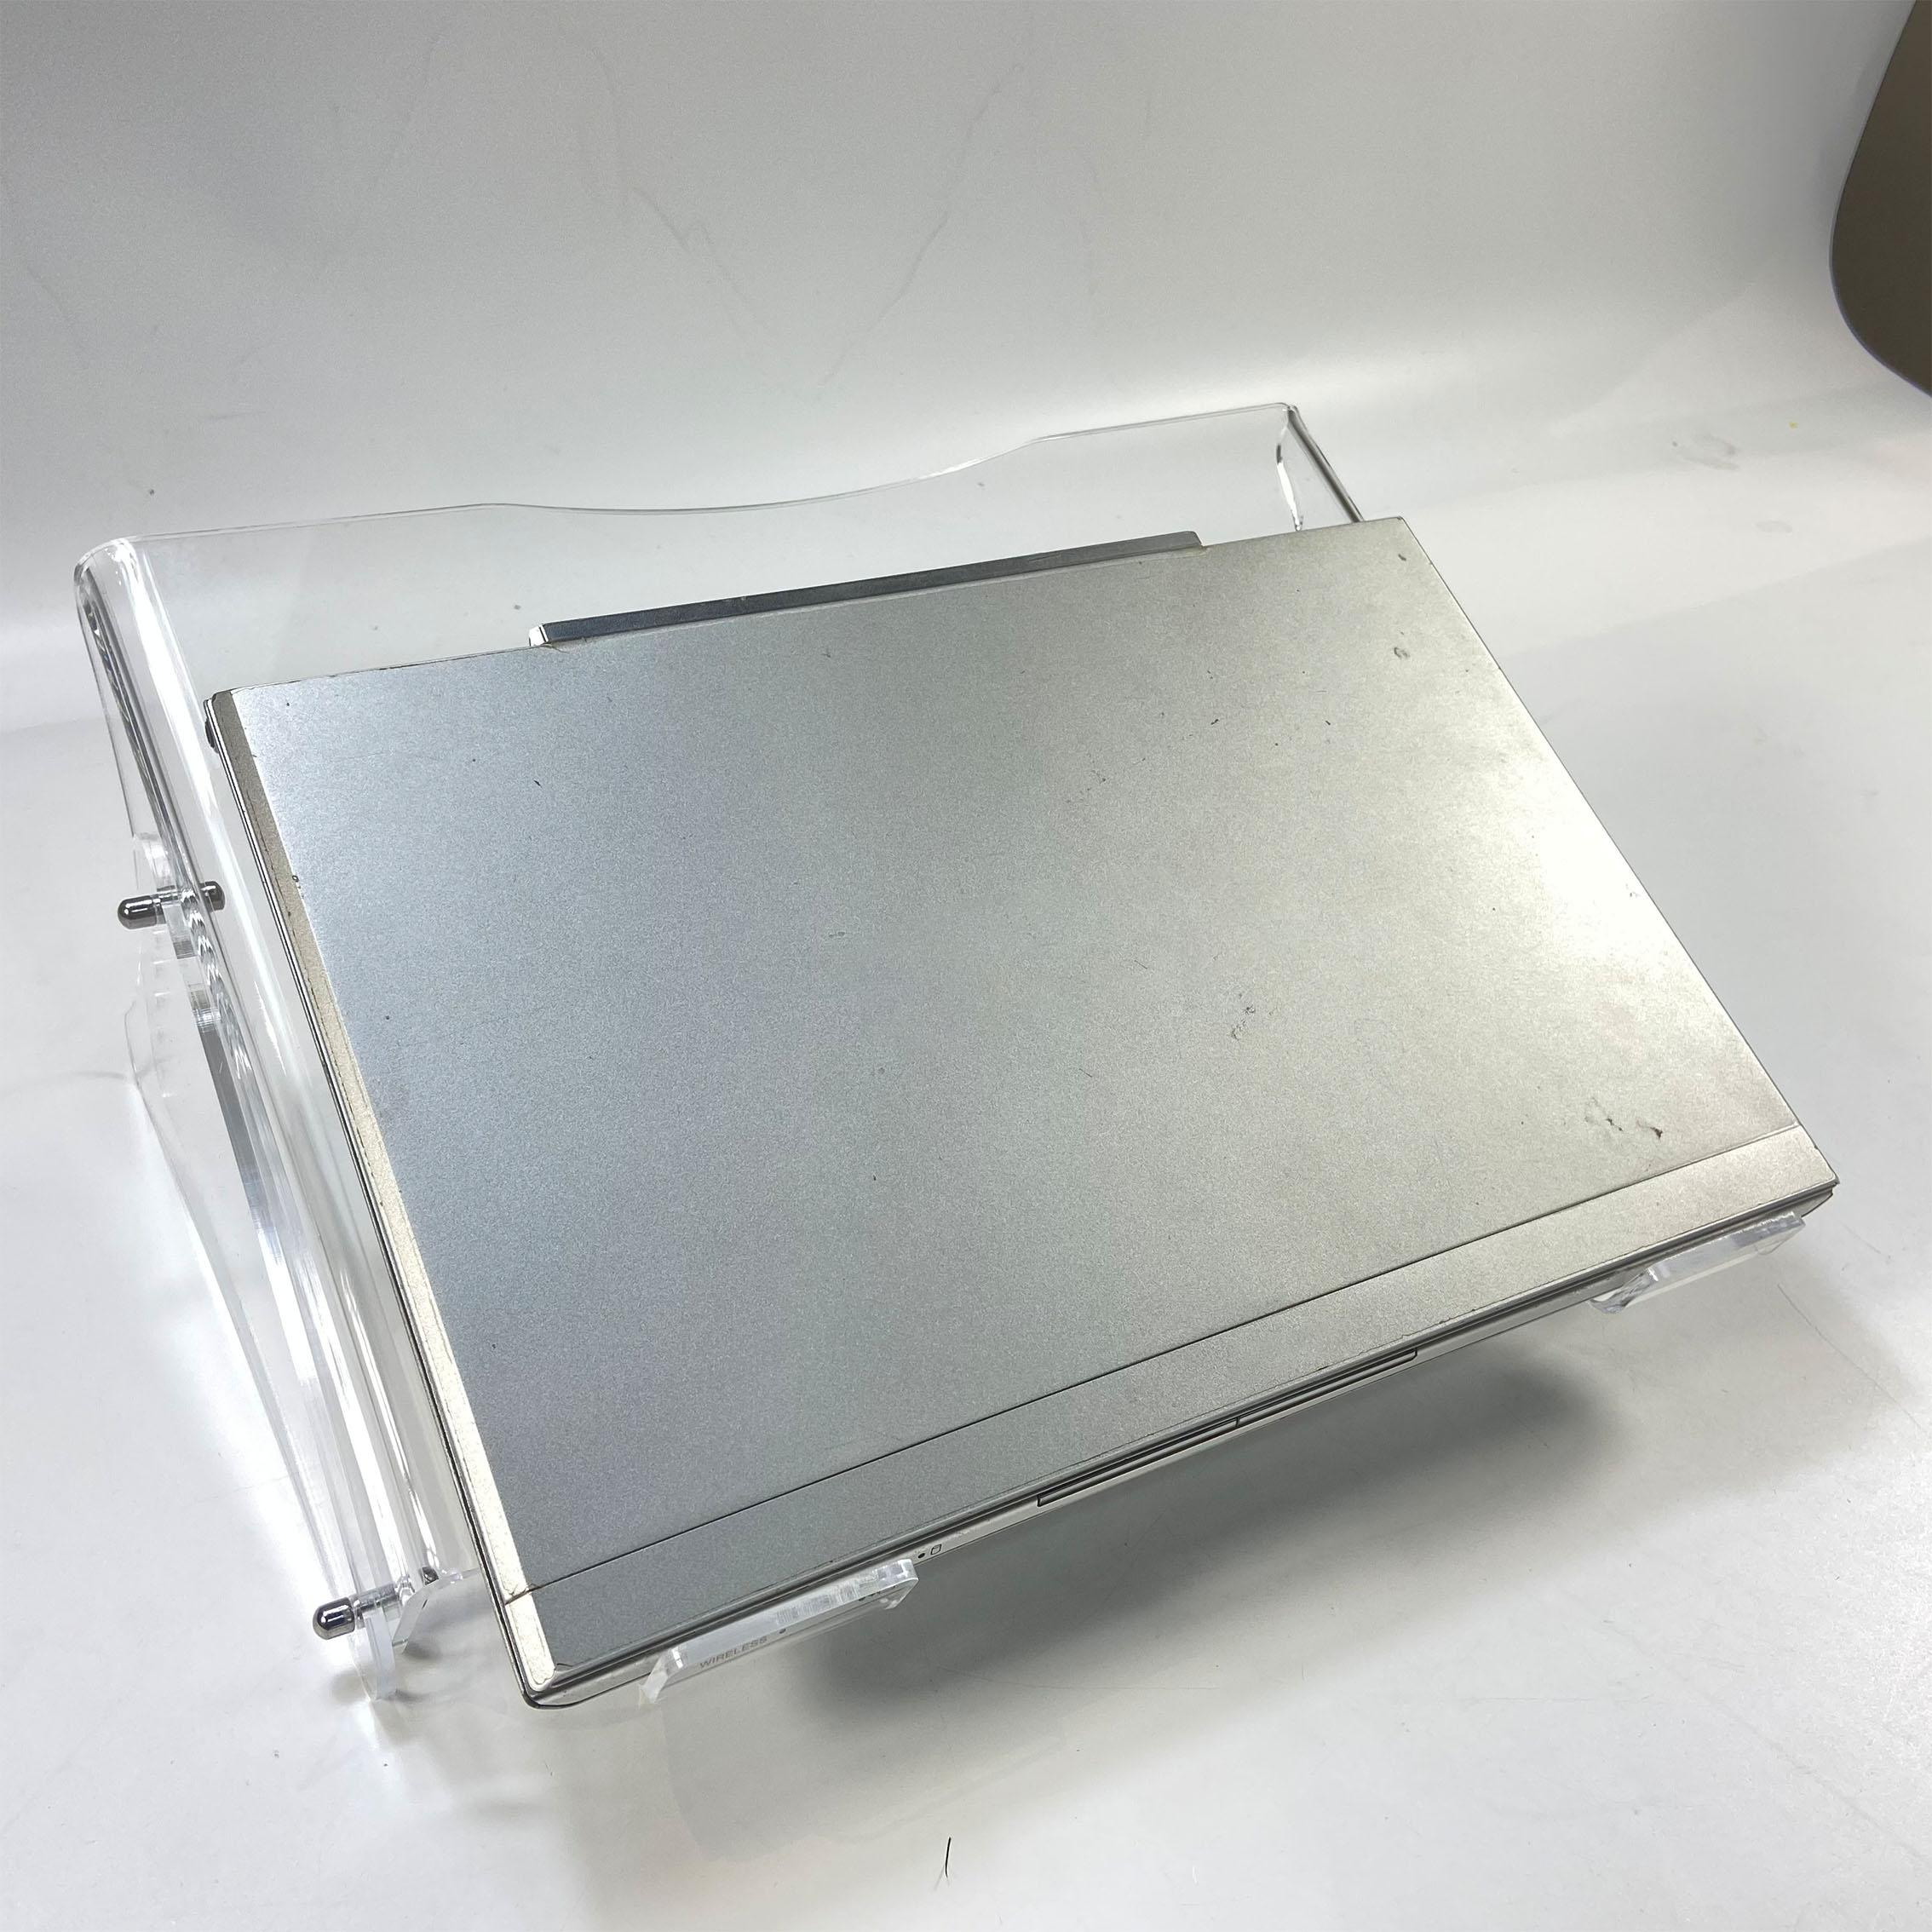 Wholesale Manufacture 2021 new style acrylic computer display transparent arcylic display stand